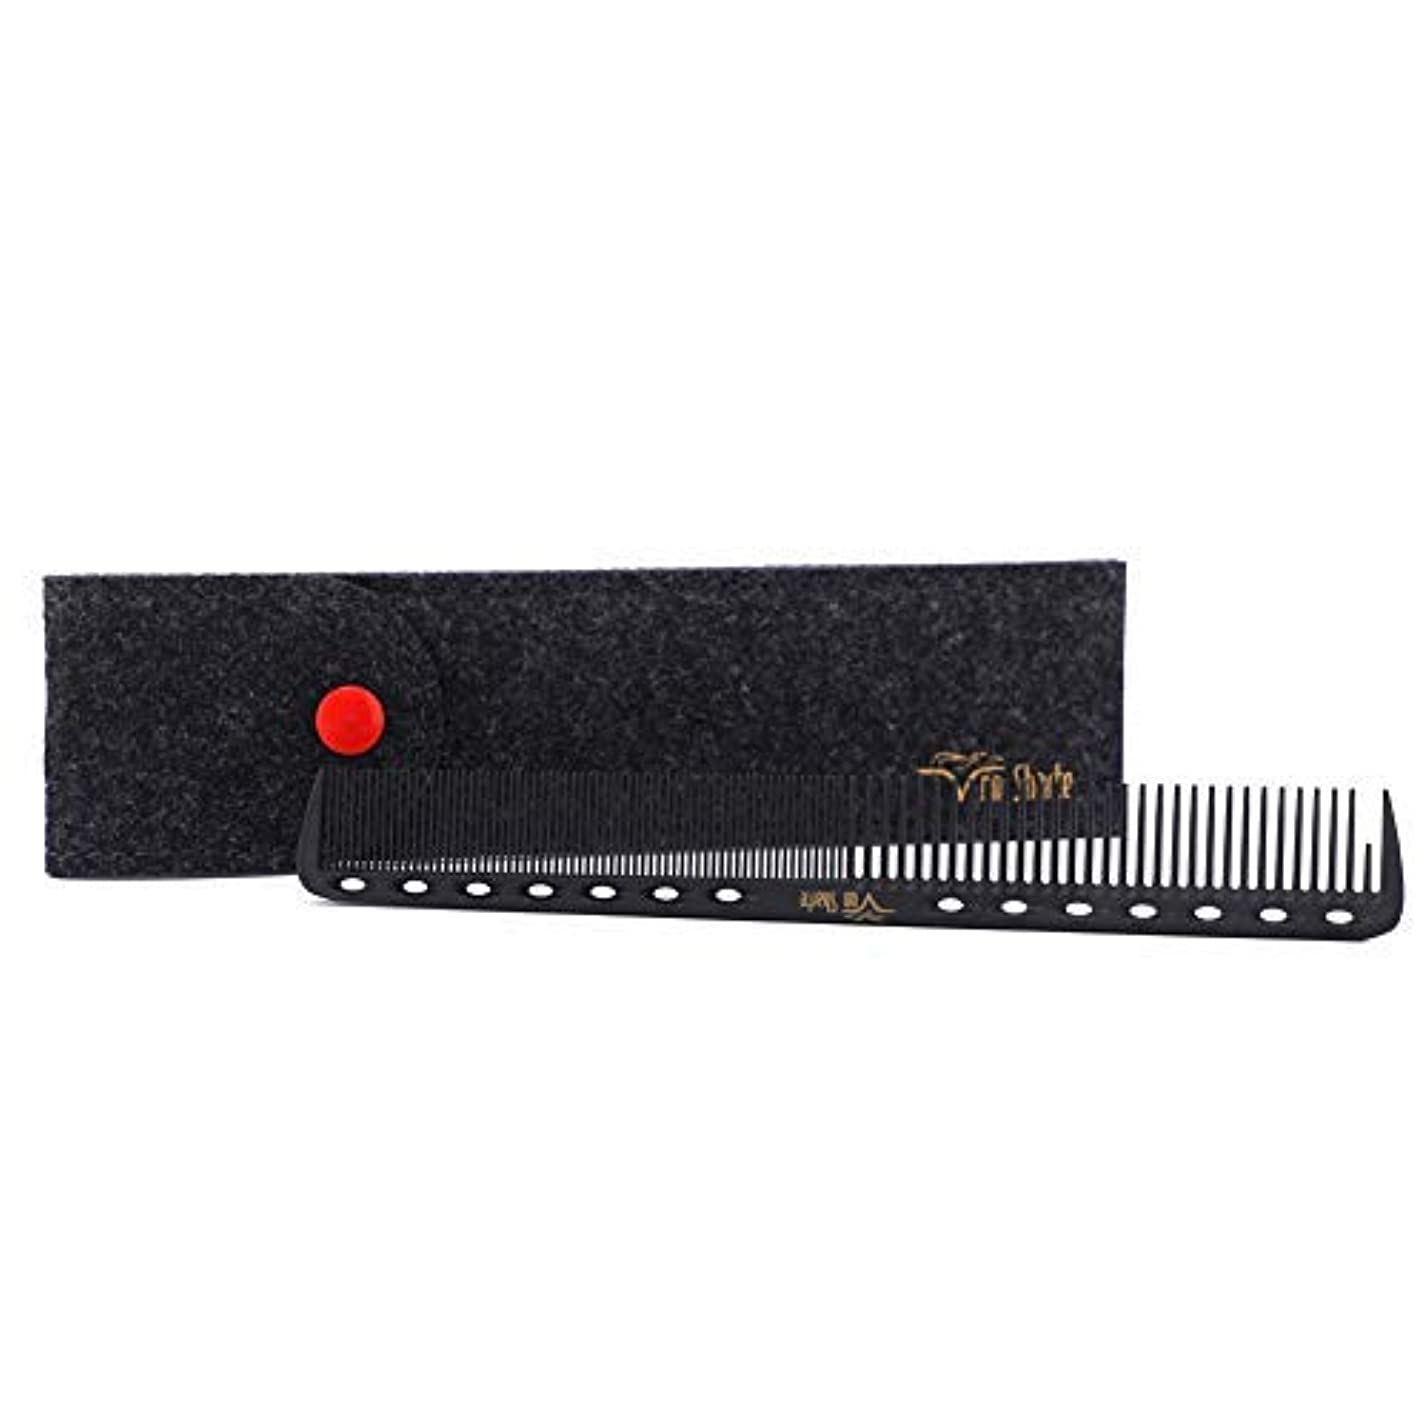 さまようパニック恐ろしいBarber Comb,Hair Cutting Combs Carbon Fiber Salon Hairdressing Comb 100% Anti Static 230℃ Heat Resistant with Smooth Round Teeth Bristle for Hair Partition/Remove Knots/Hair Cutting/Dying/Styling [並行輸入品]